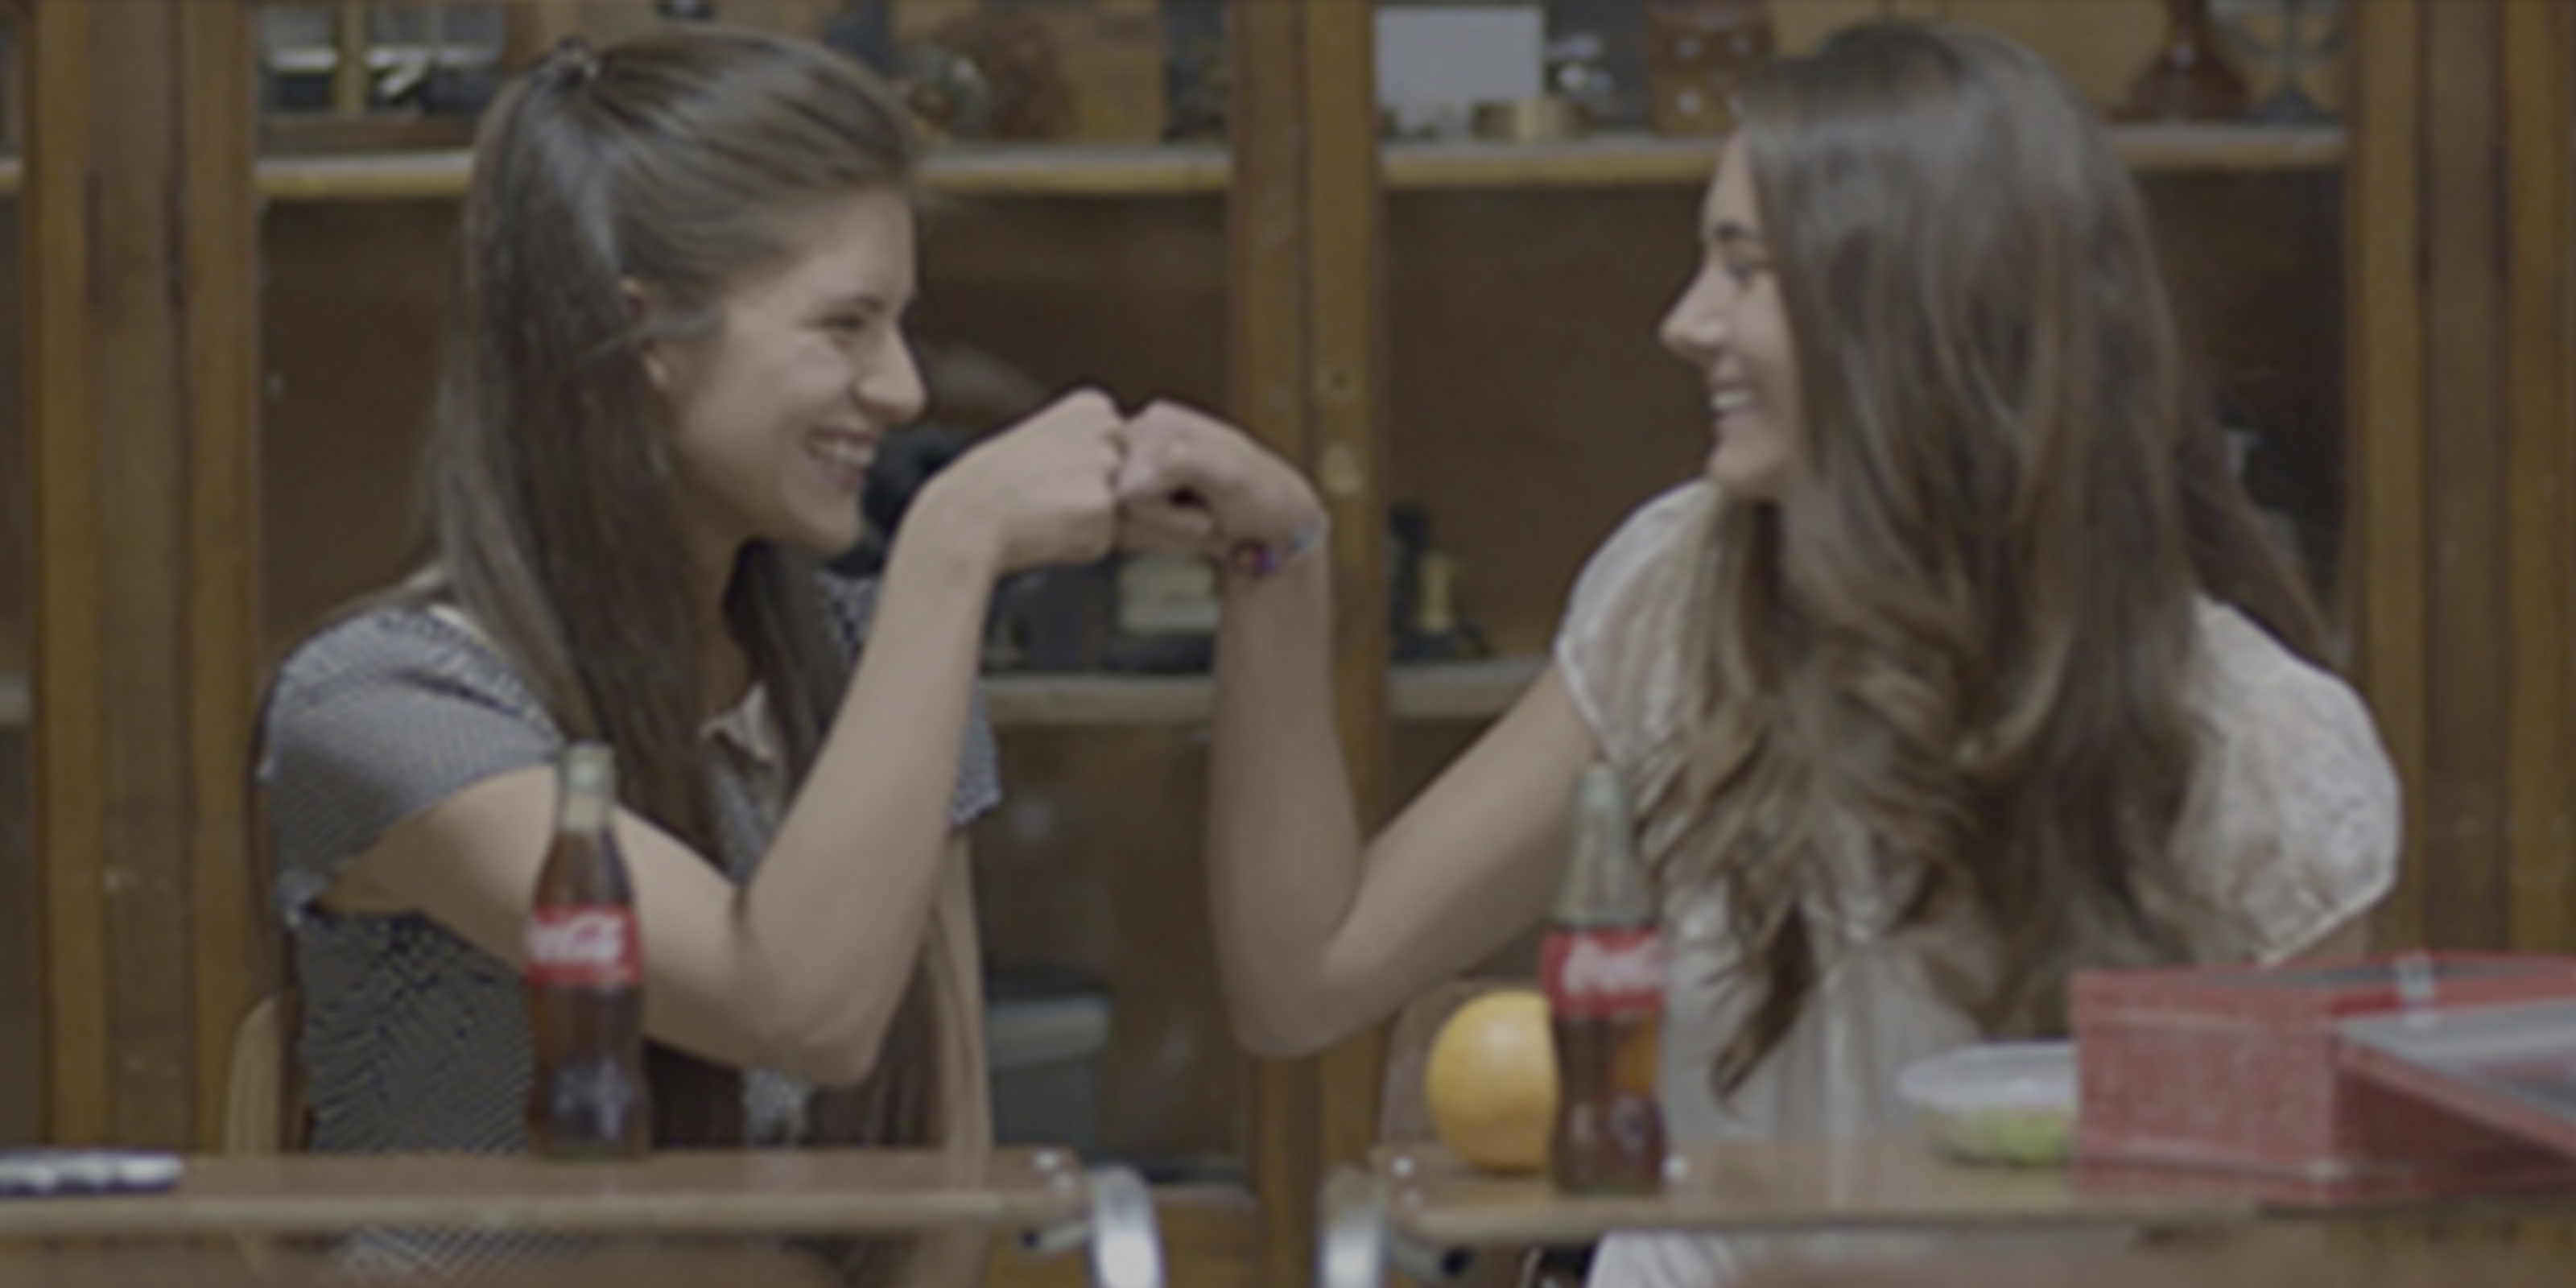 Coca-Cola Embraces the Fist Bump and Gets Serious About True Friendship